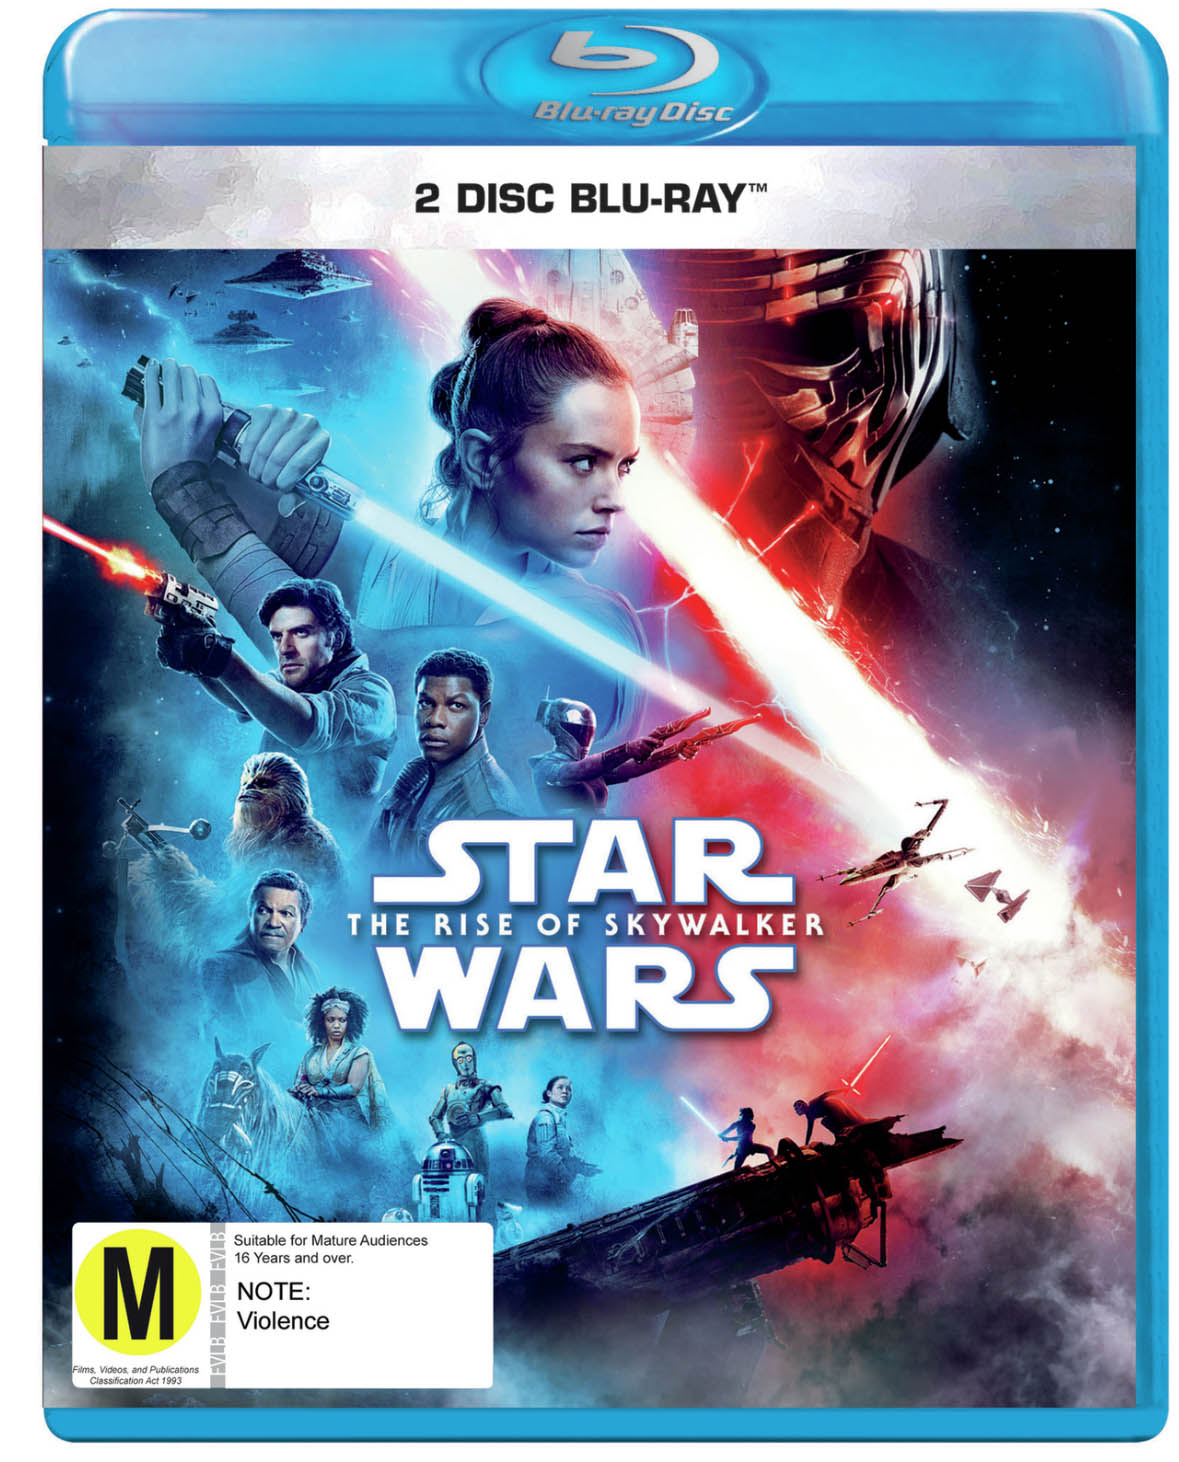 Star Wars - Rise of Skywalker Bluray